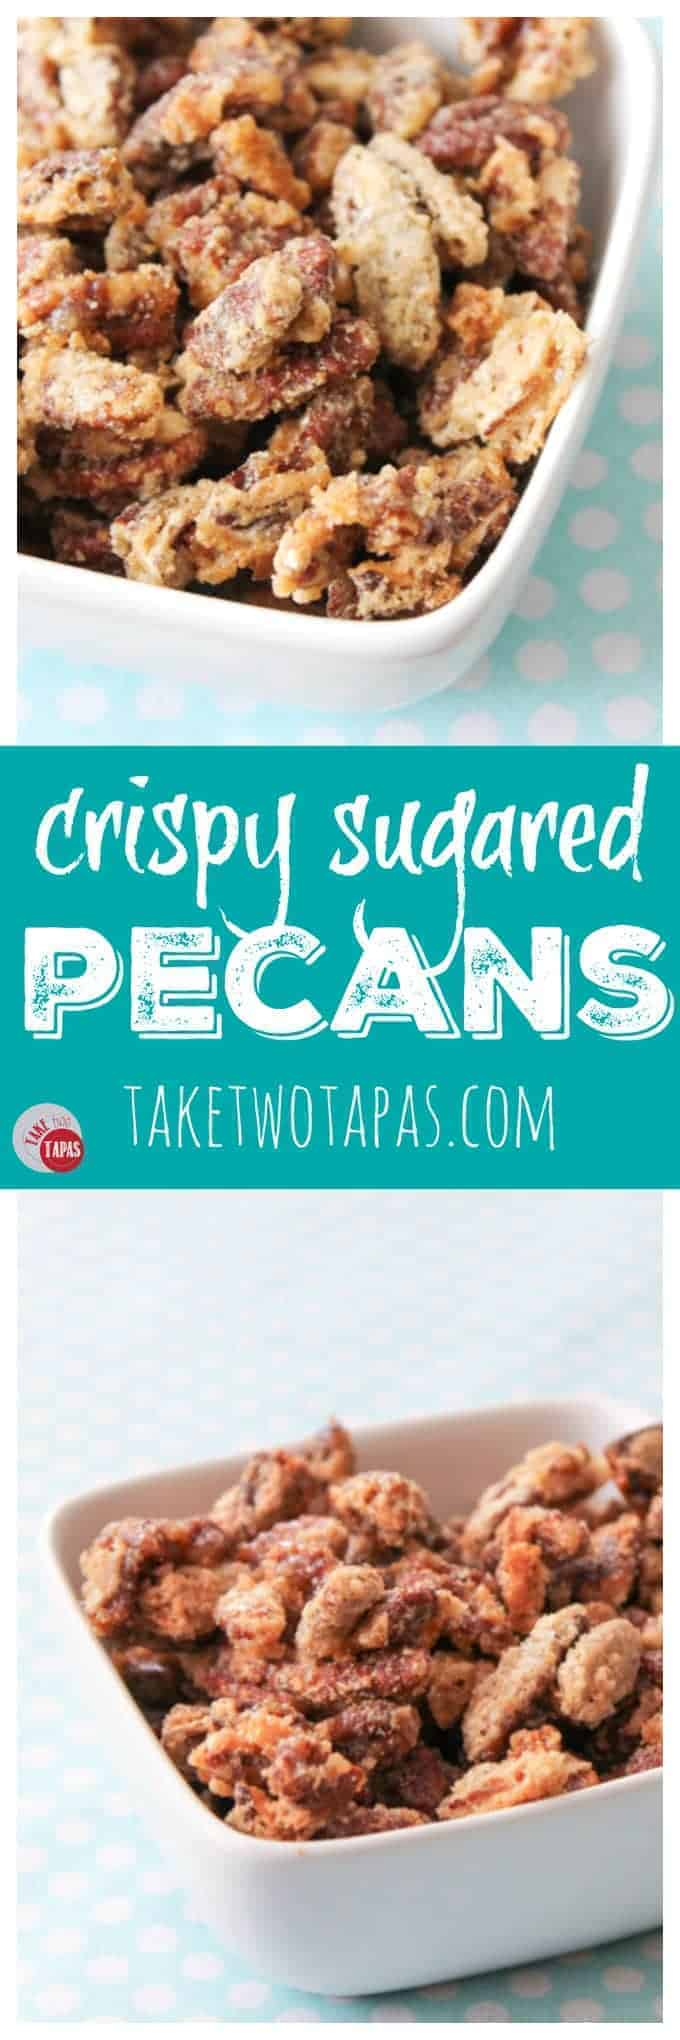 Crispy Sugared Pecans | Take Two Tapas | #Pecans #Sugared #nuts #Candied